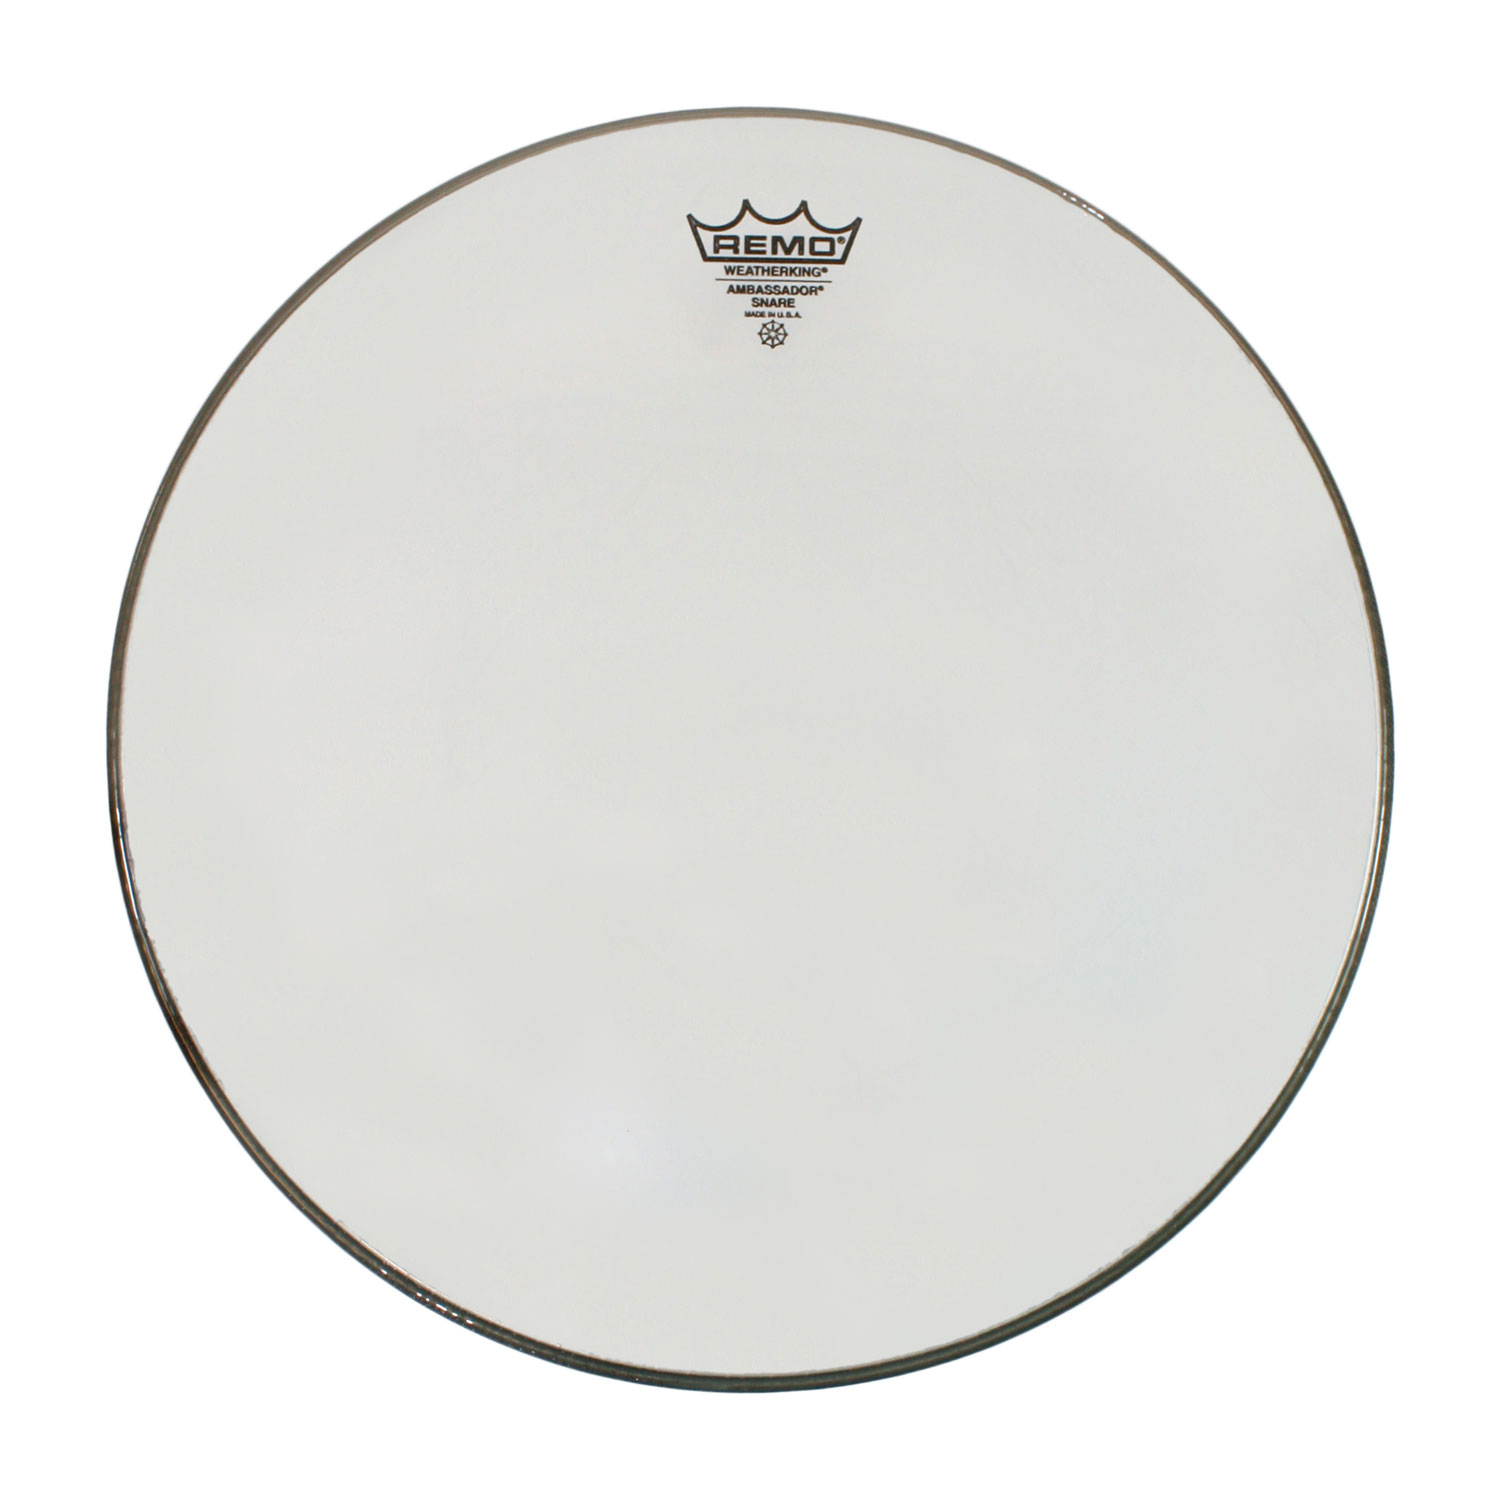 "Remo 14"" Ambassador Hazy Snare Side (Bottom) Drum Head"